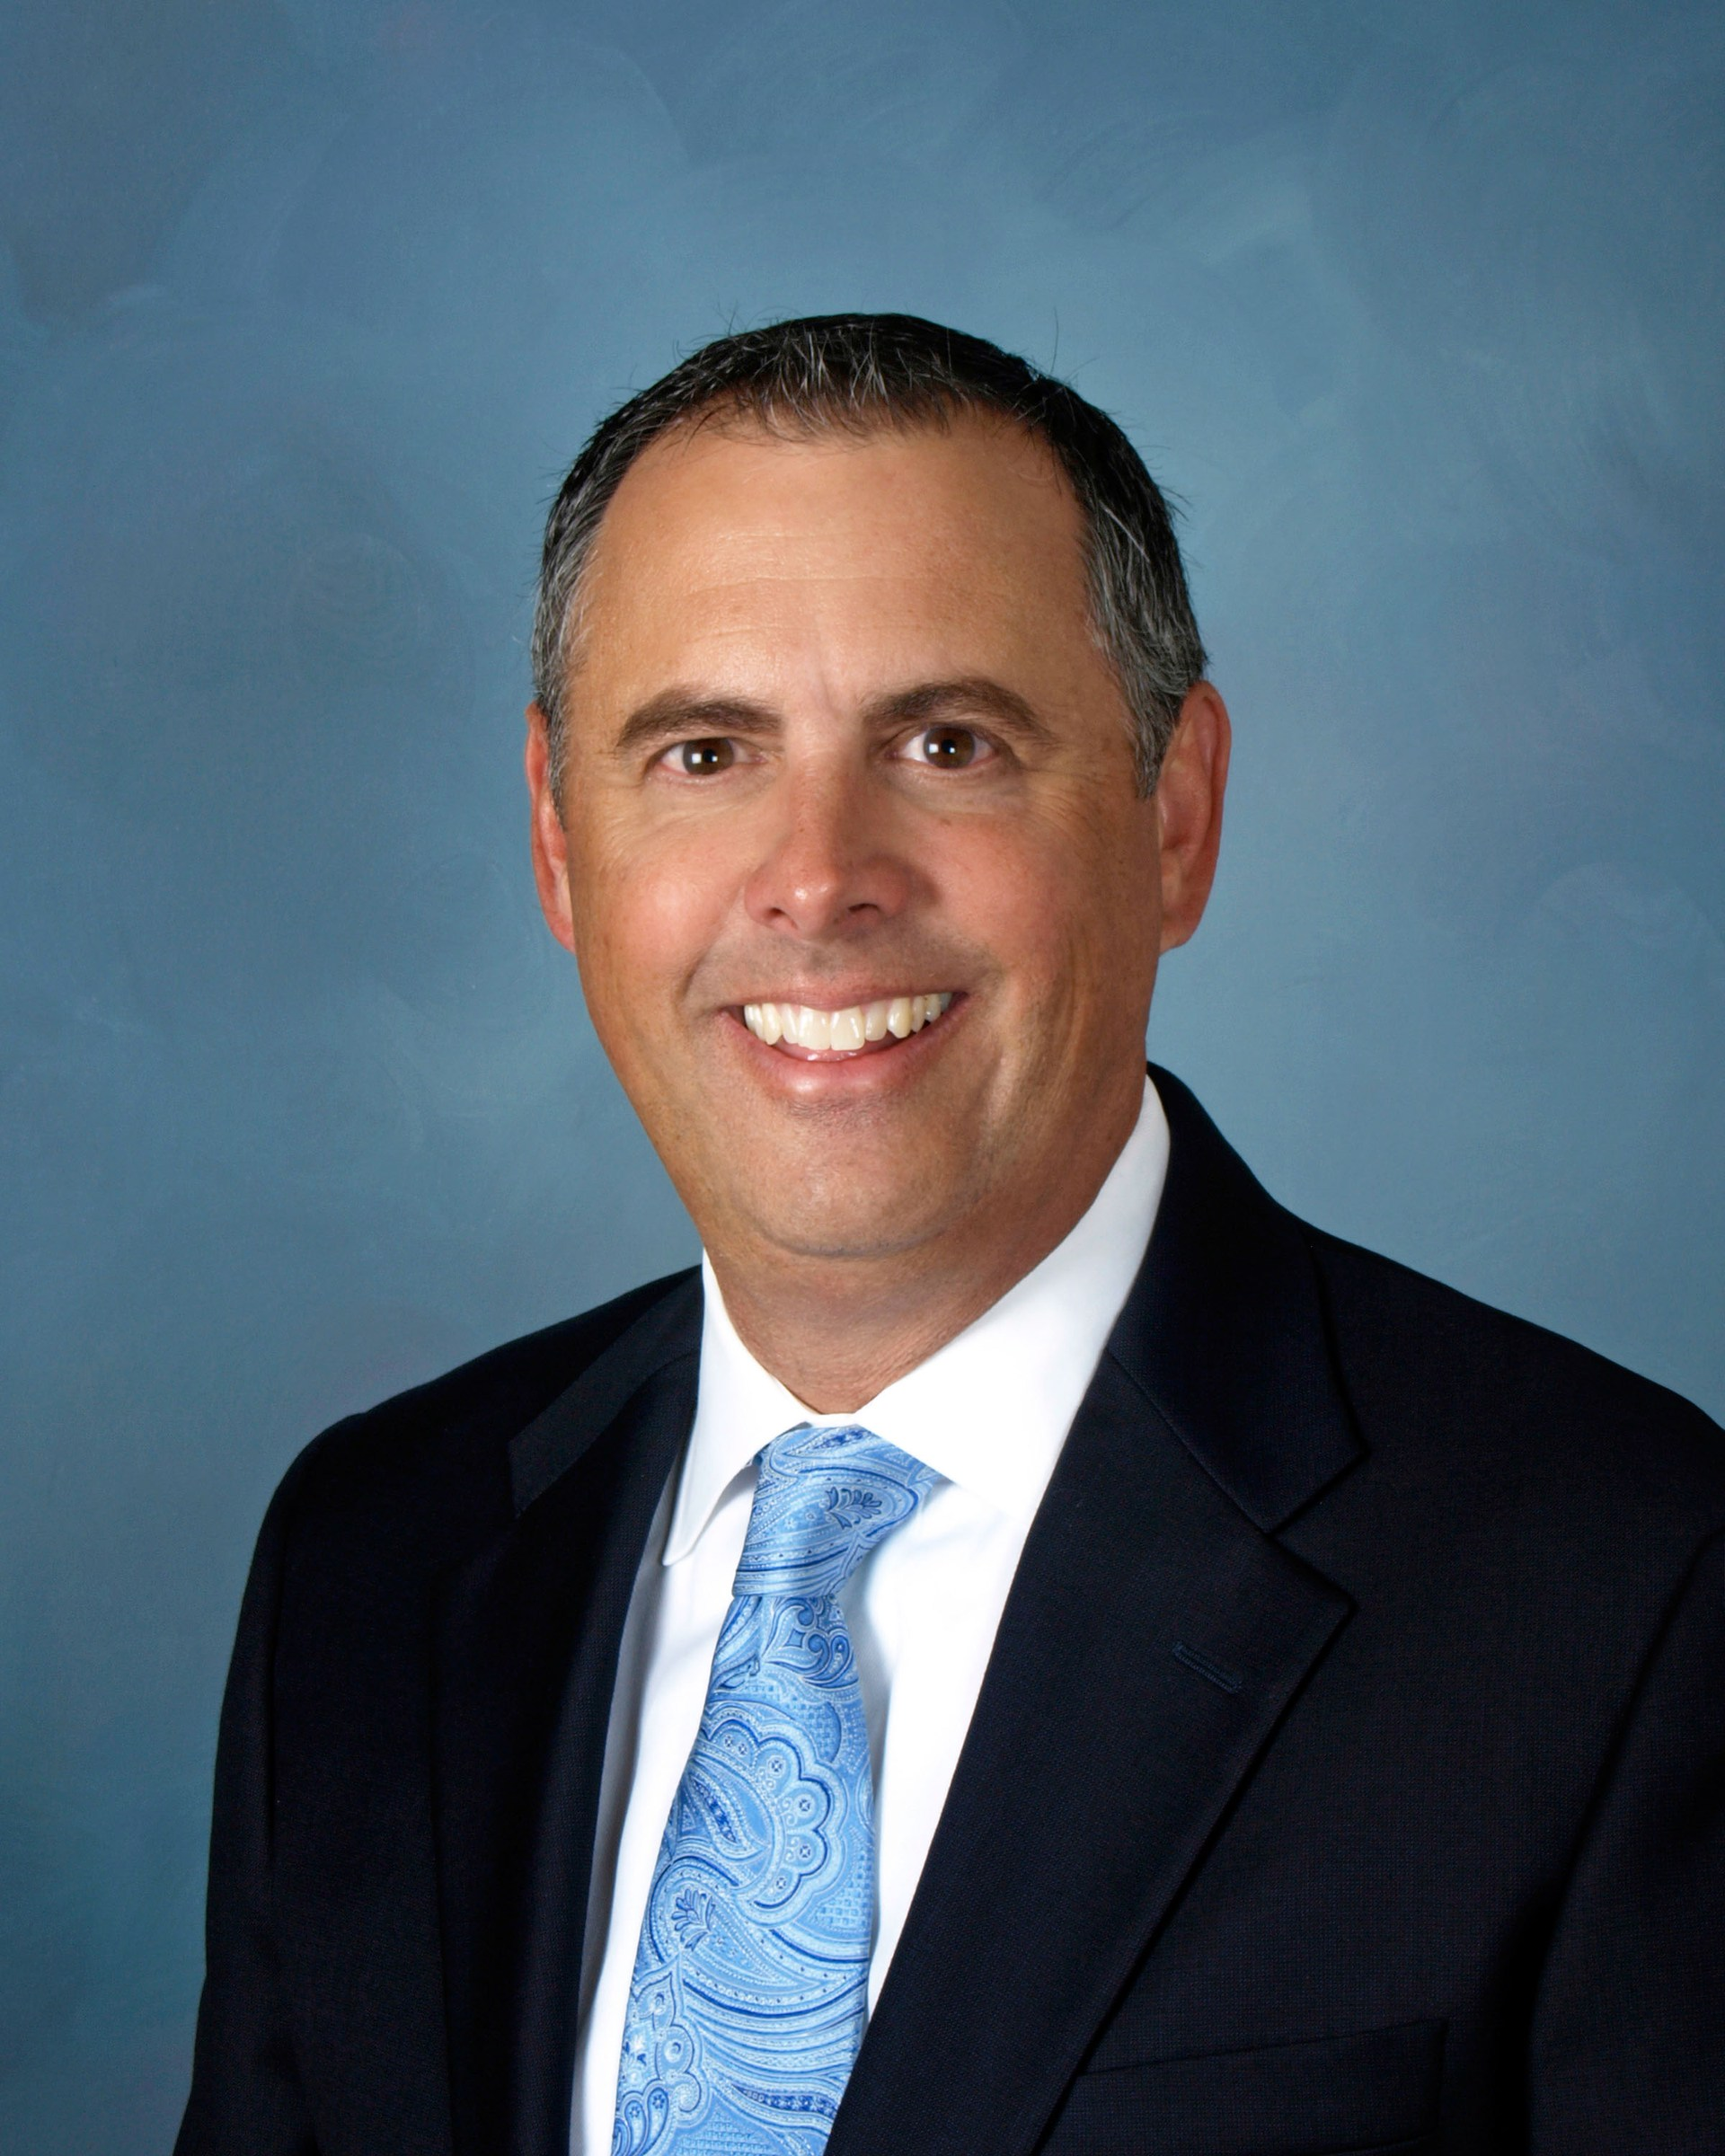 A picture of Dr. Greg Plutko, Placentia-Yorba Linda Unified School District Superintendent.